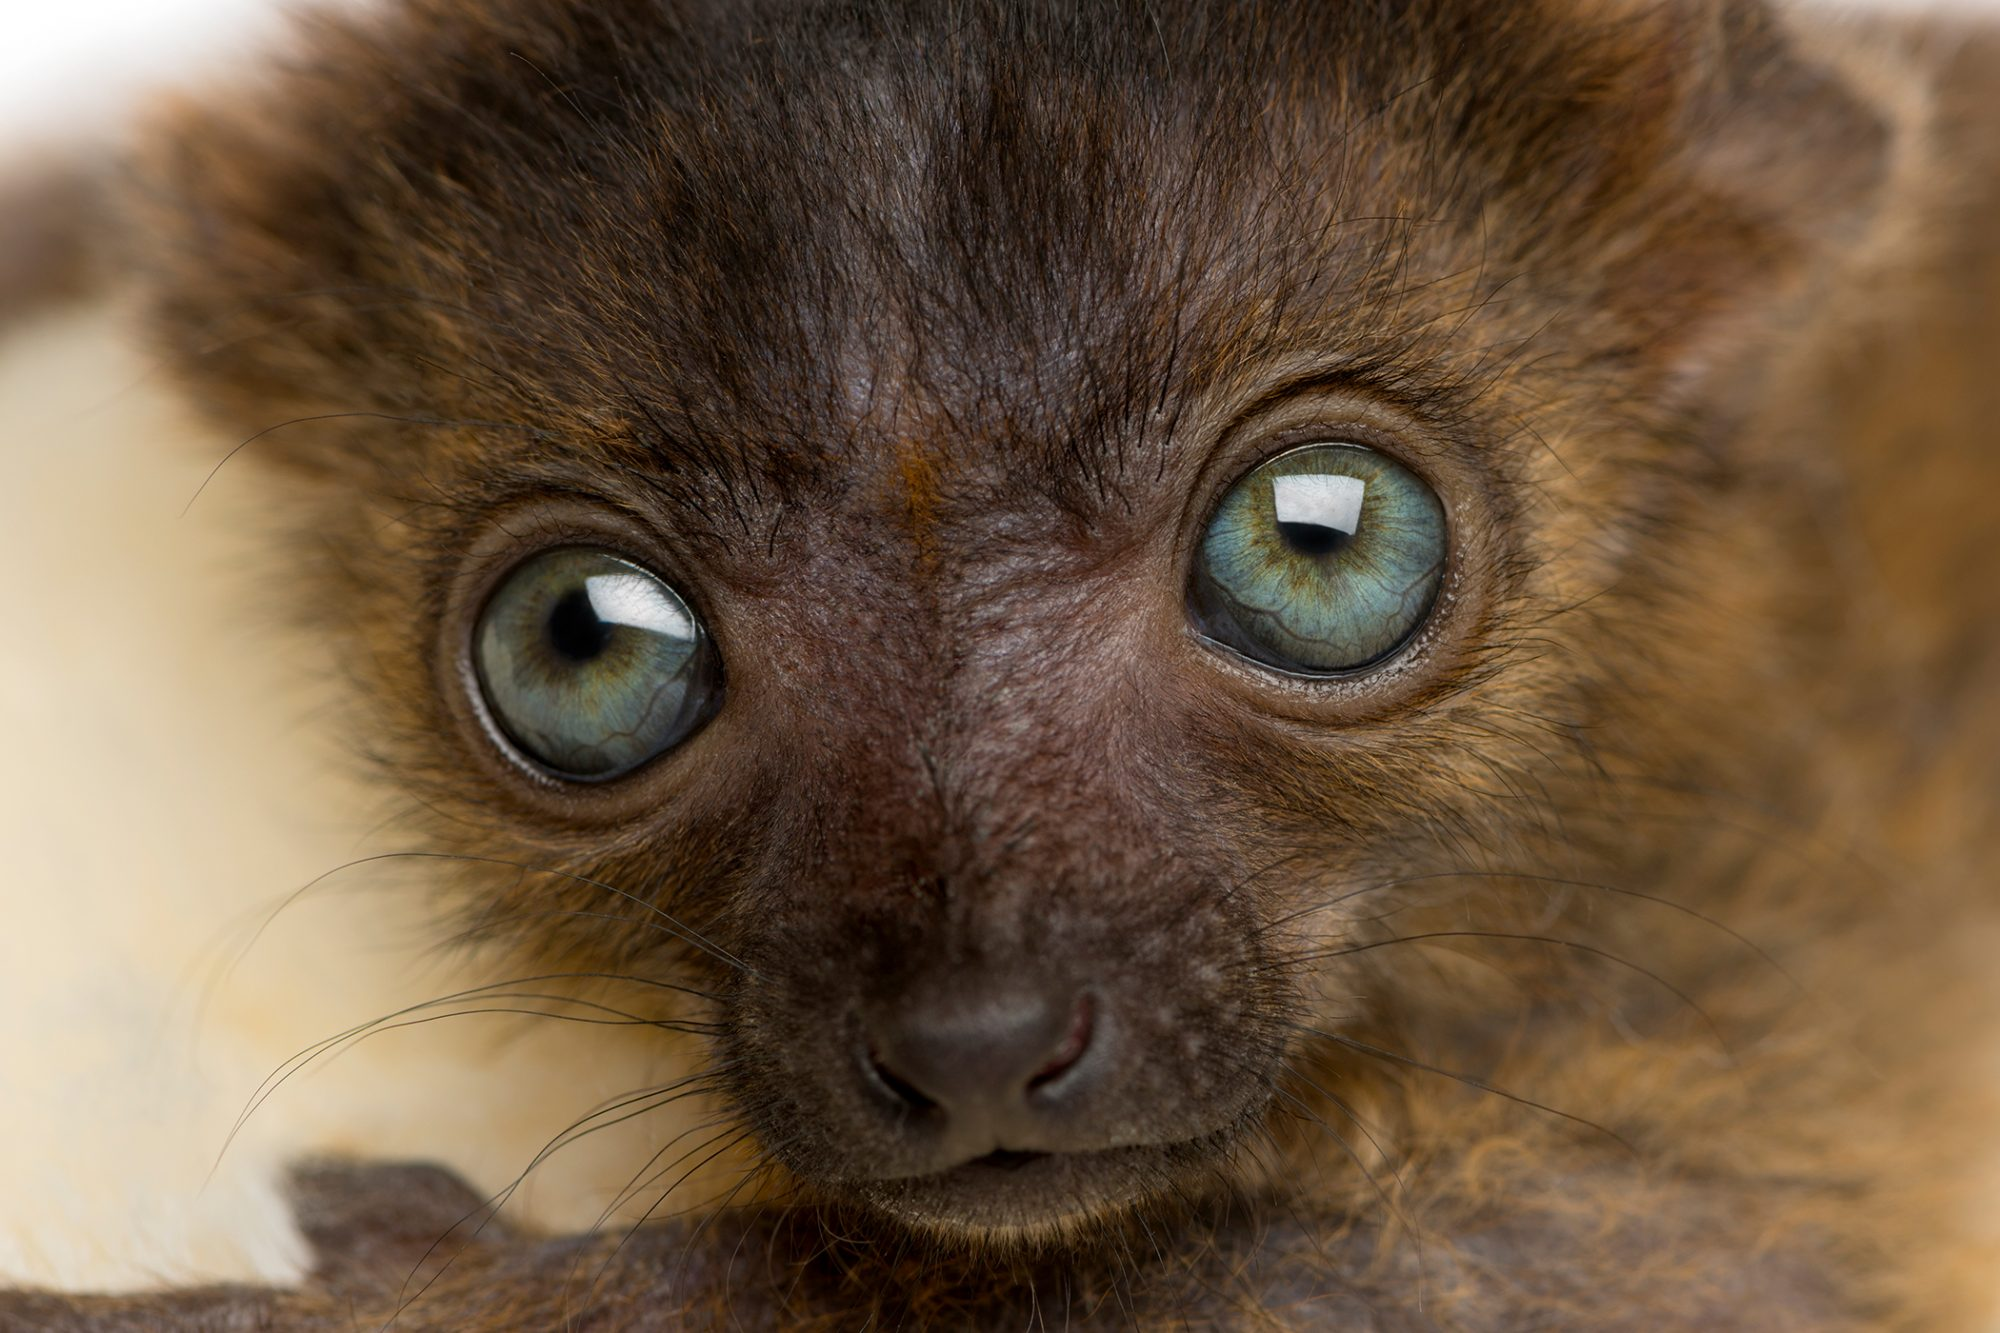 close up of a newborn lemur's face